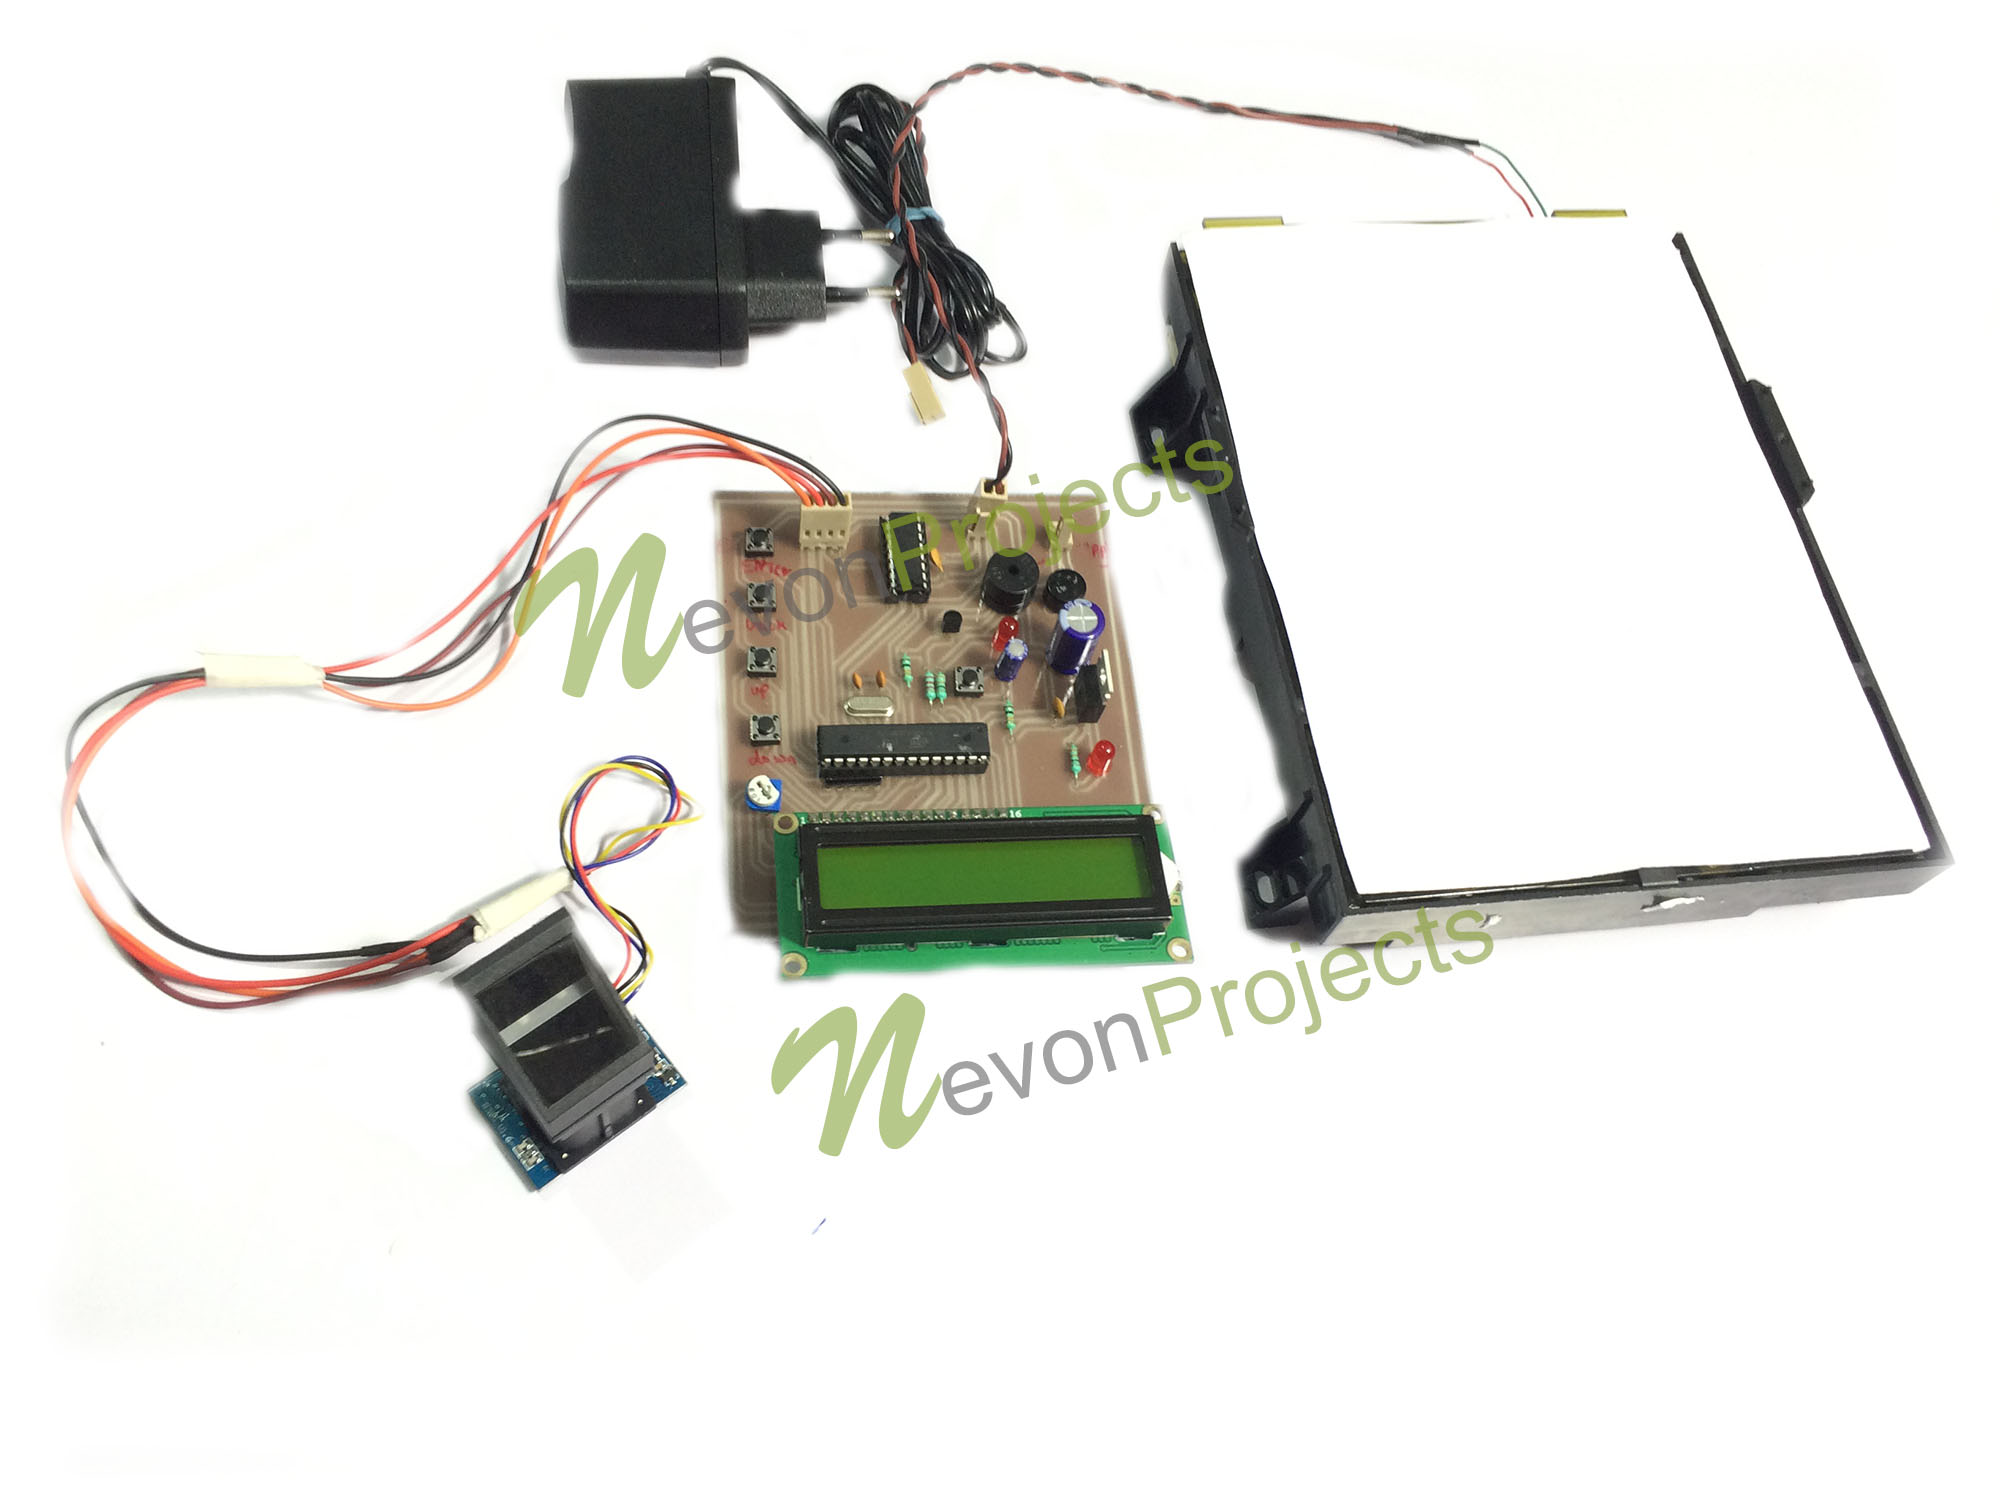 Fingerprint Based Security System Project | NevonProjects